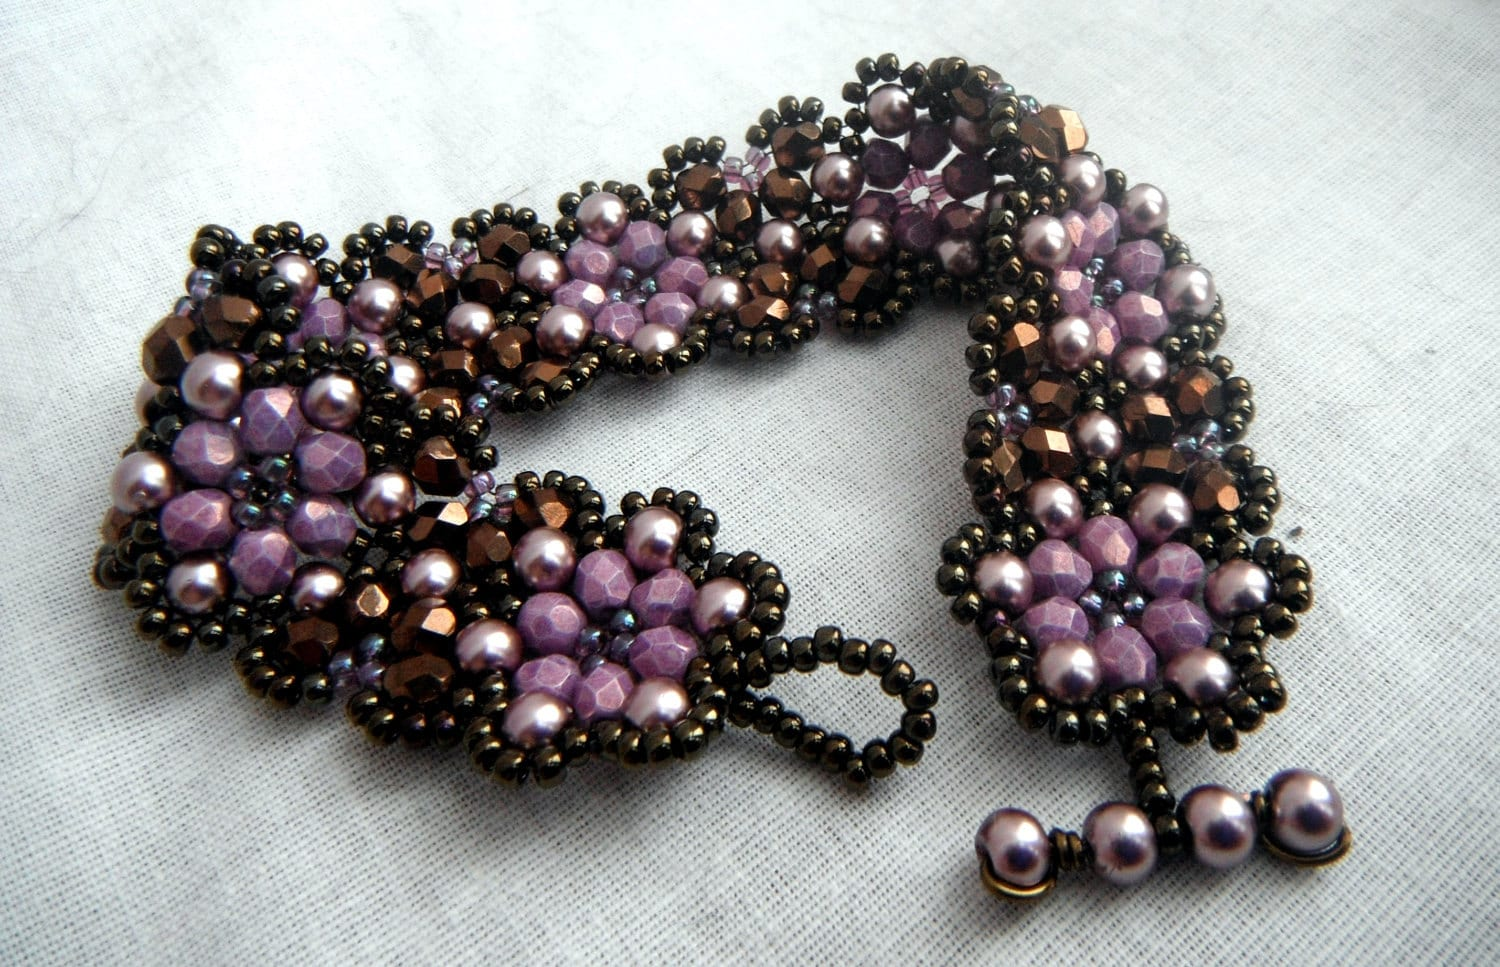 Floral Chain Cuff Bracelet - Dark Bronze, Chocolate and Lilac Purple - OceanPearlJewellery